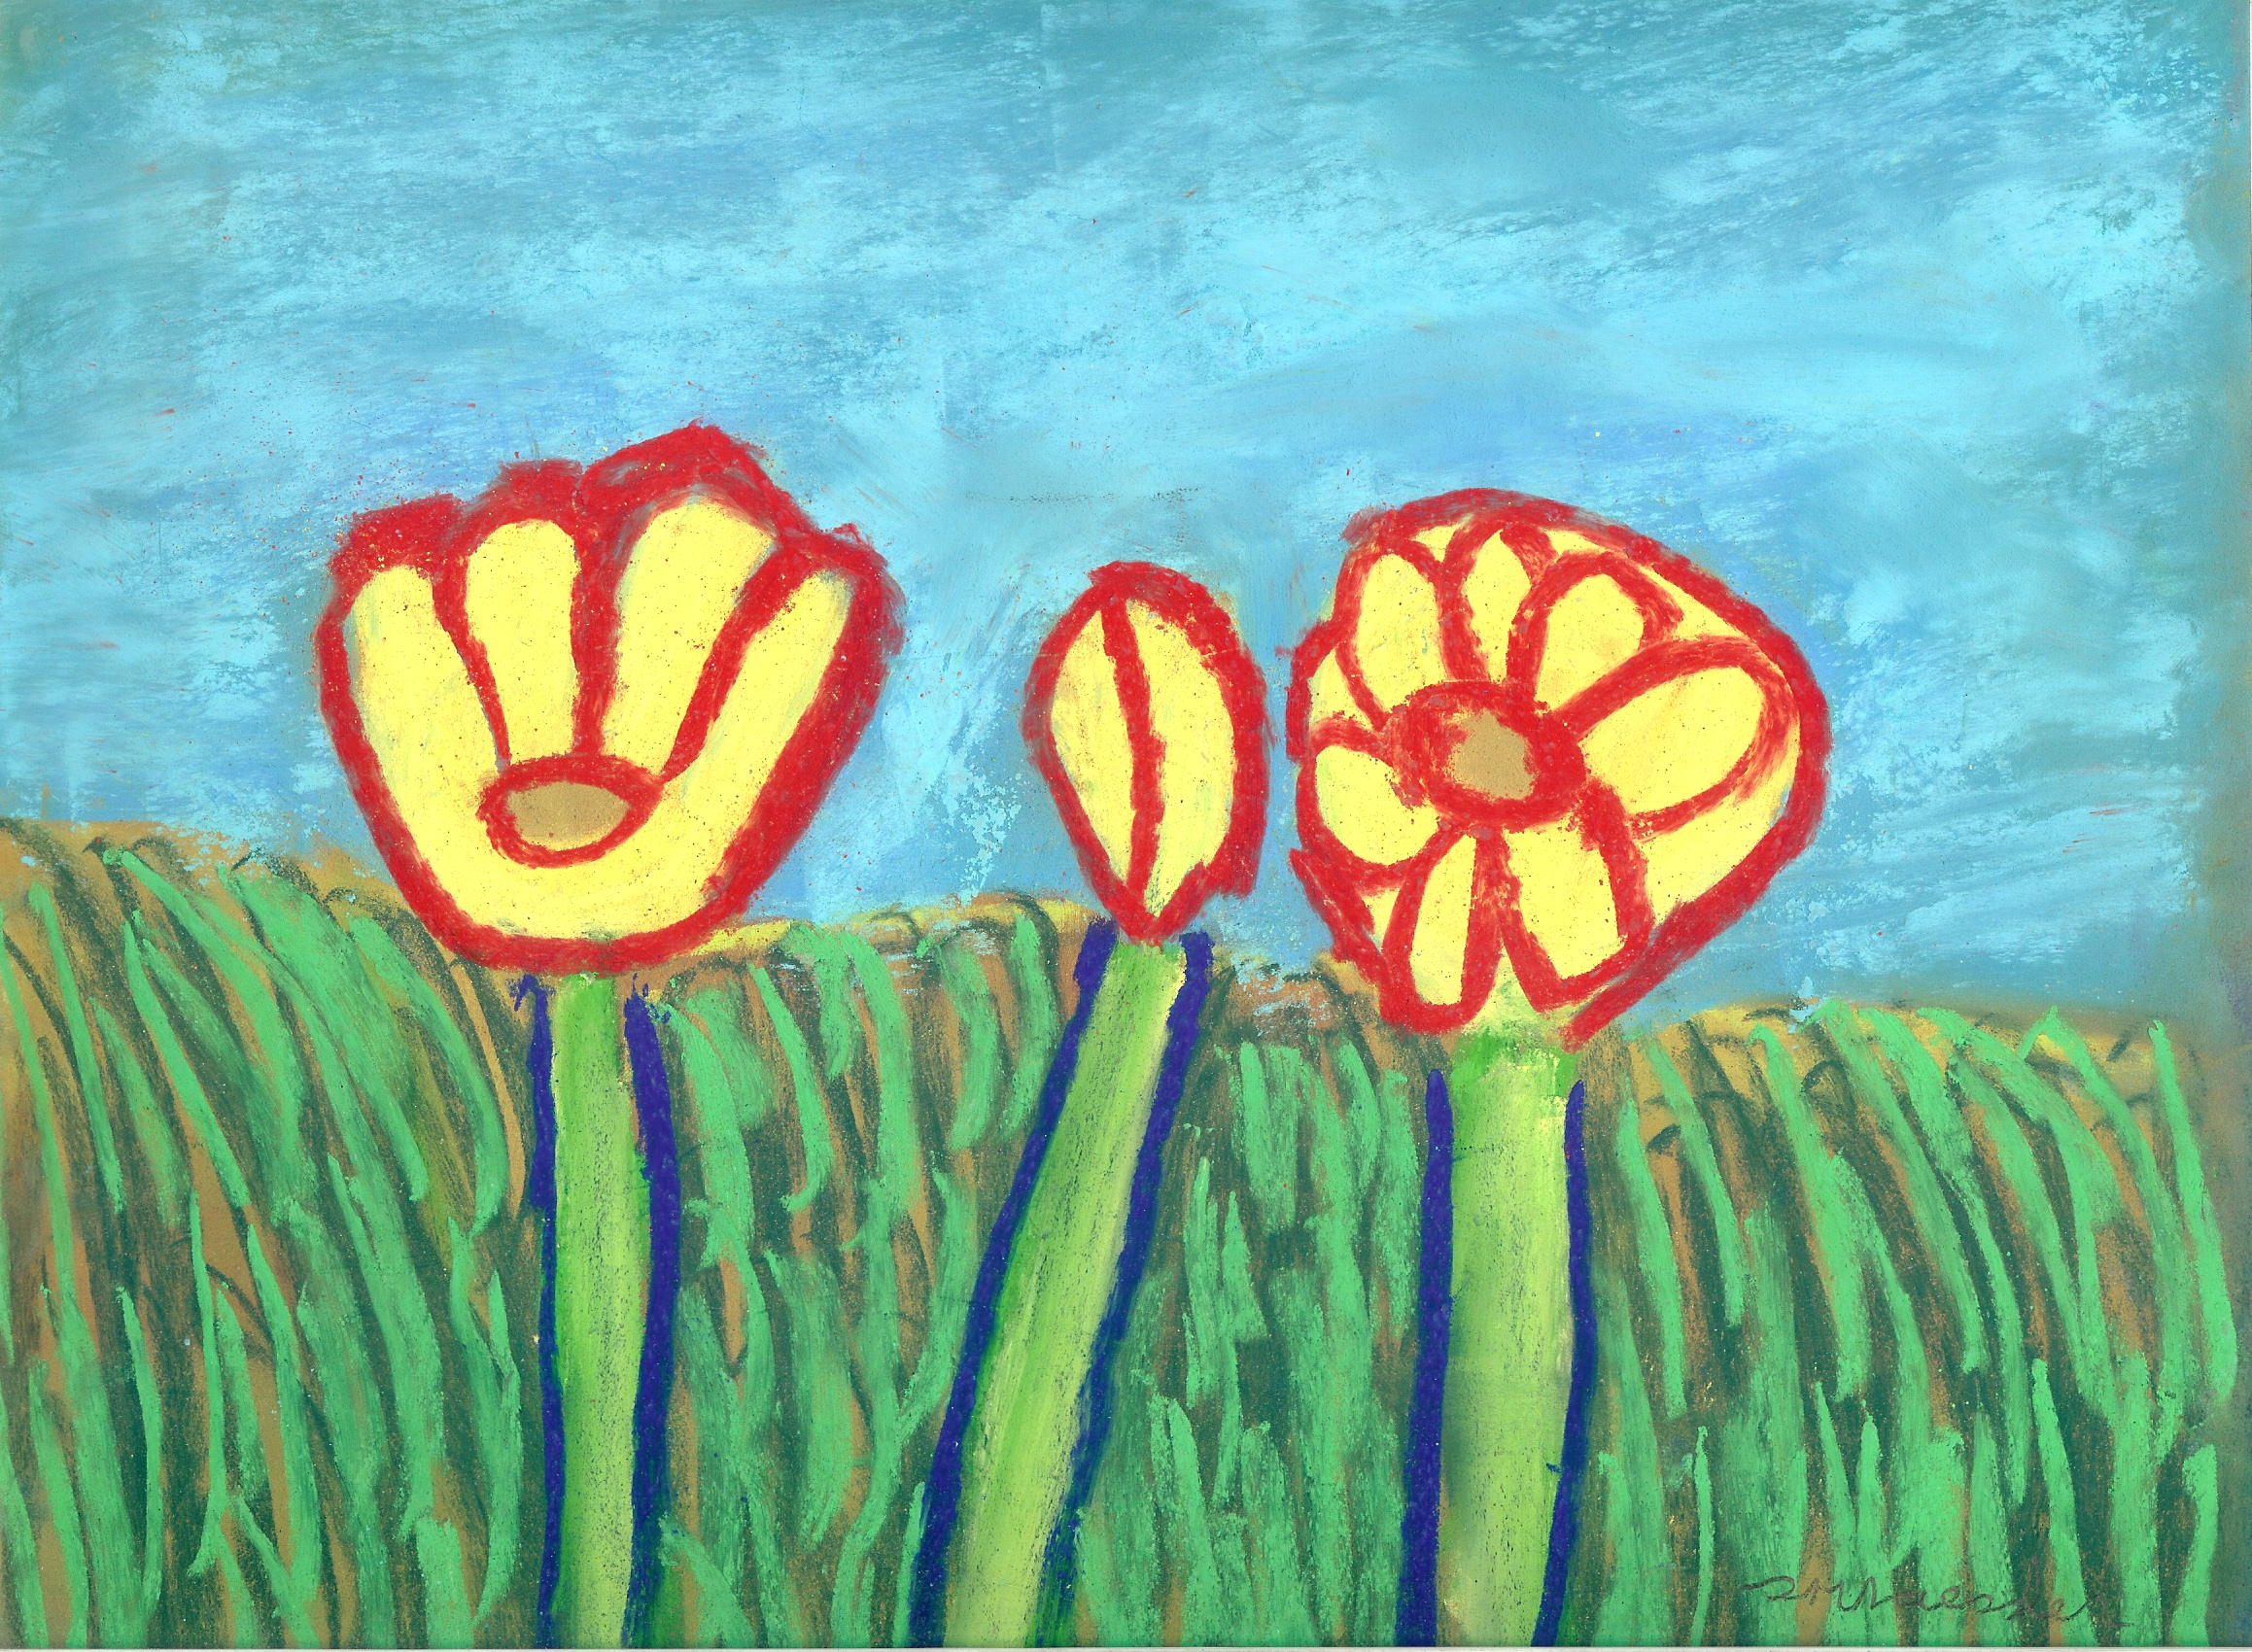 """Trois Fleurs"" Painting - Donated by: Sarah Raessler, Value: $165This 15X18 pastel chalk painting is an original work of art by local artist, Sarah Raessler. Sarah works solely with pastel chalk, loving the textures and mixing of colors. She has been creating with pastels since 2003."